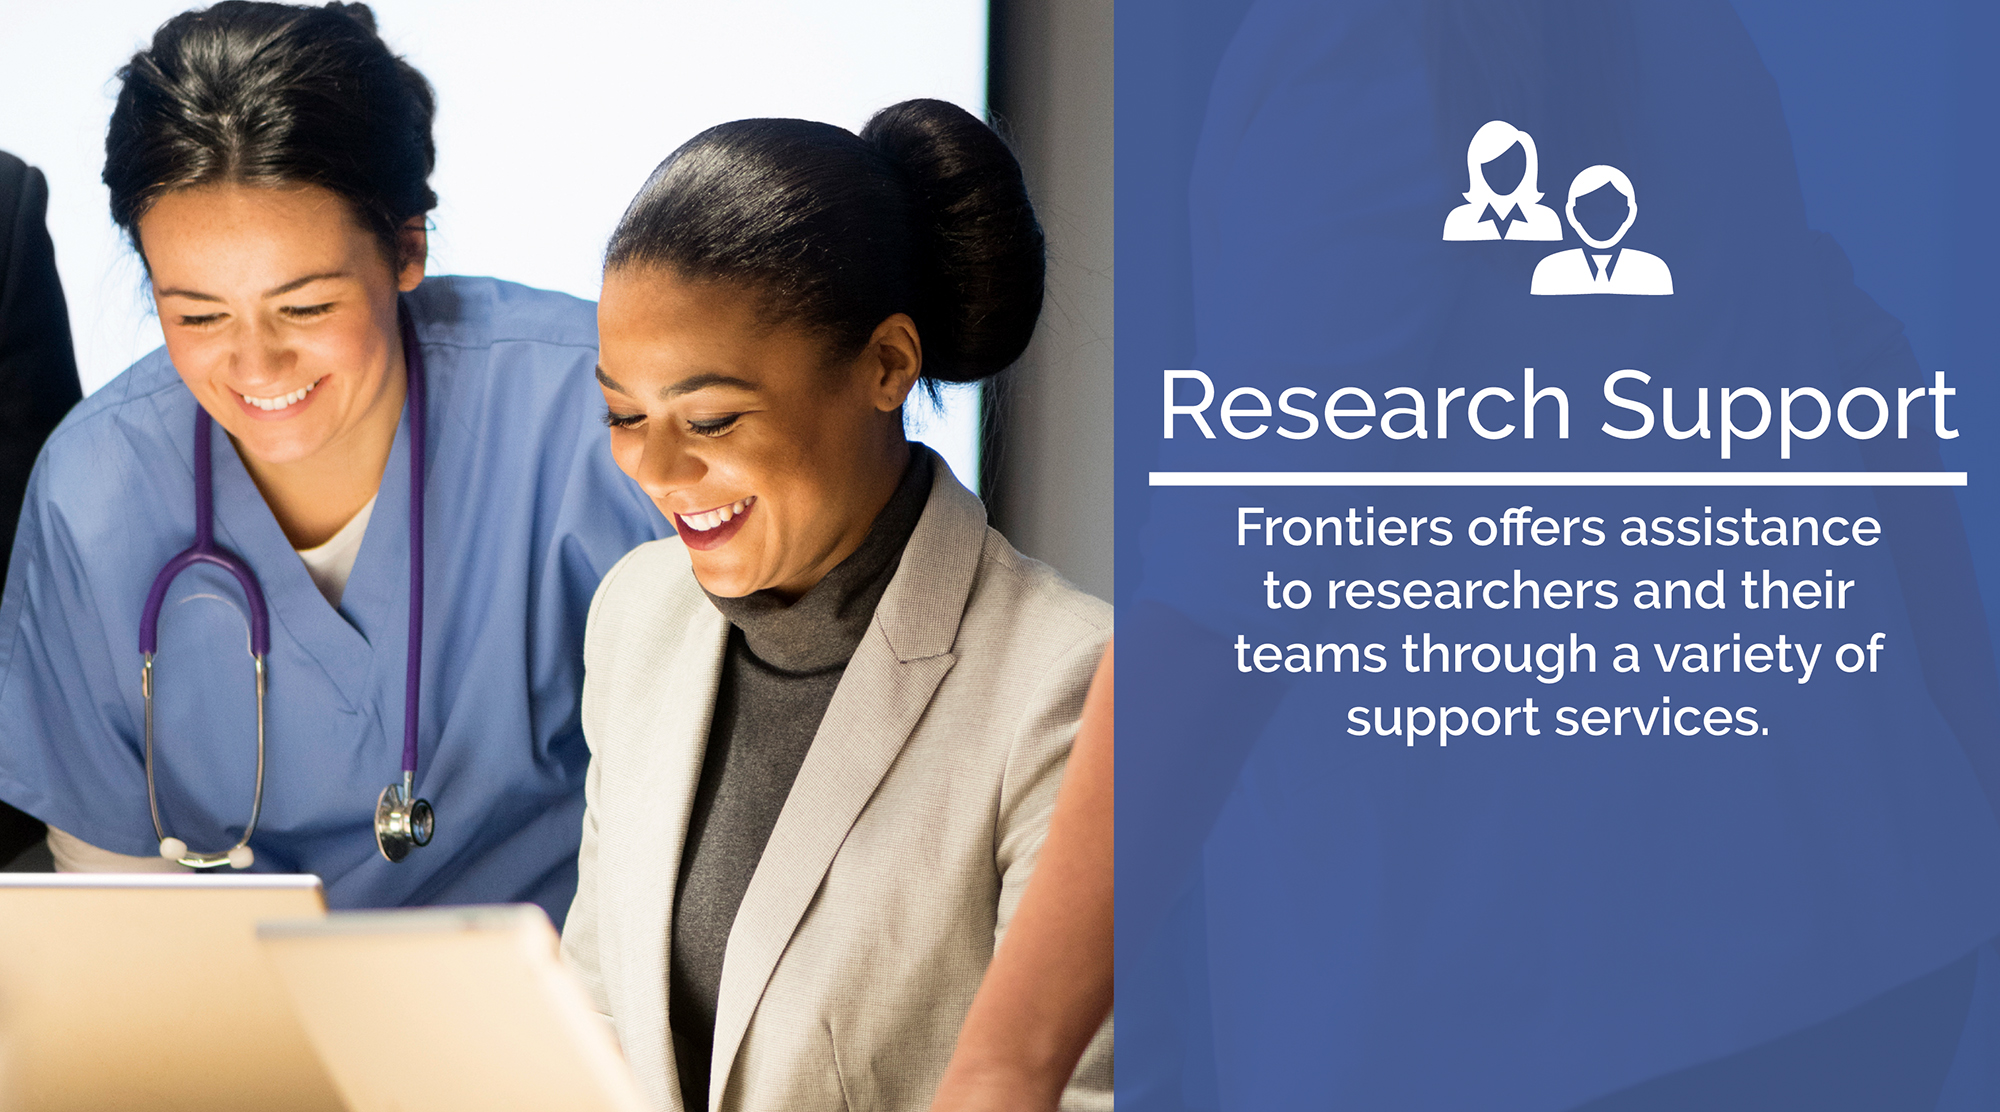 Research Support: Frontiers offers assistance to reserachers and their teams through a variety of support services